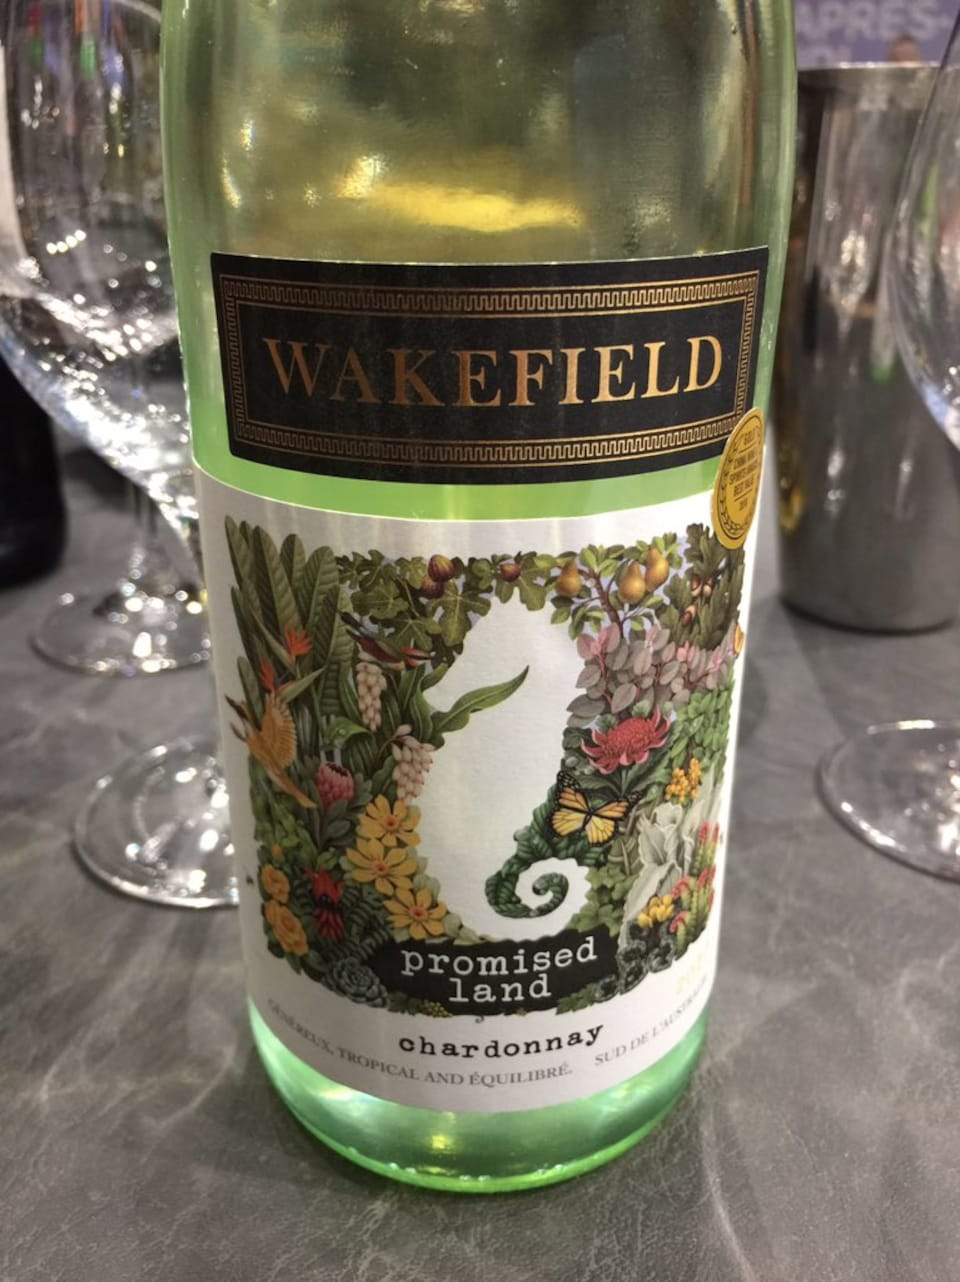 Wakefield Promised Land Unwooded Chardonnay 2017 | Code SAQ 12505743 | 14,60$